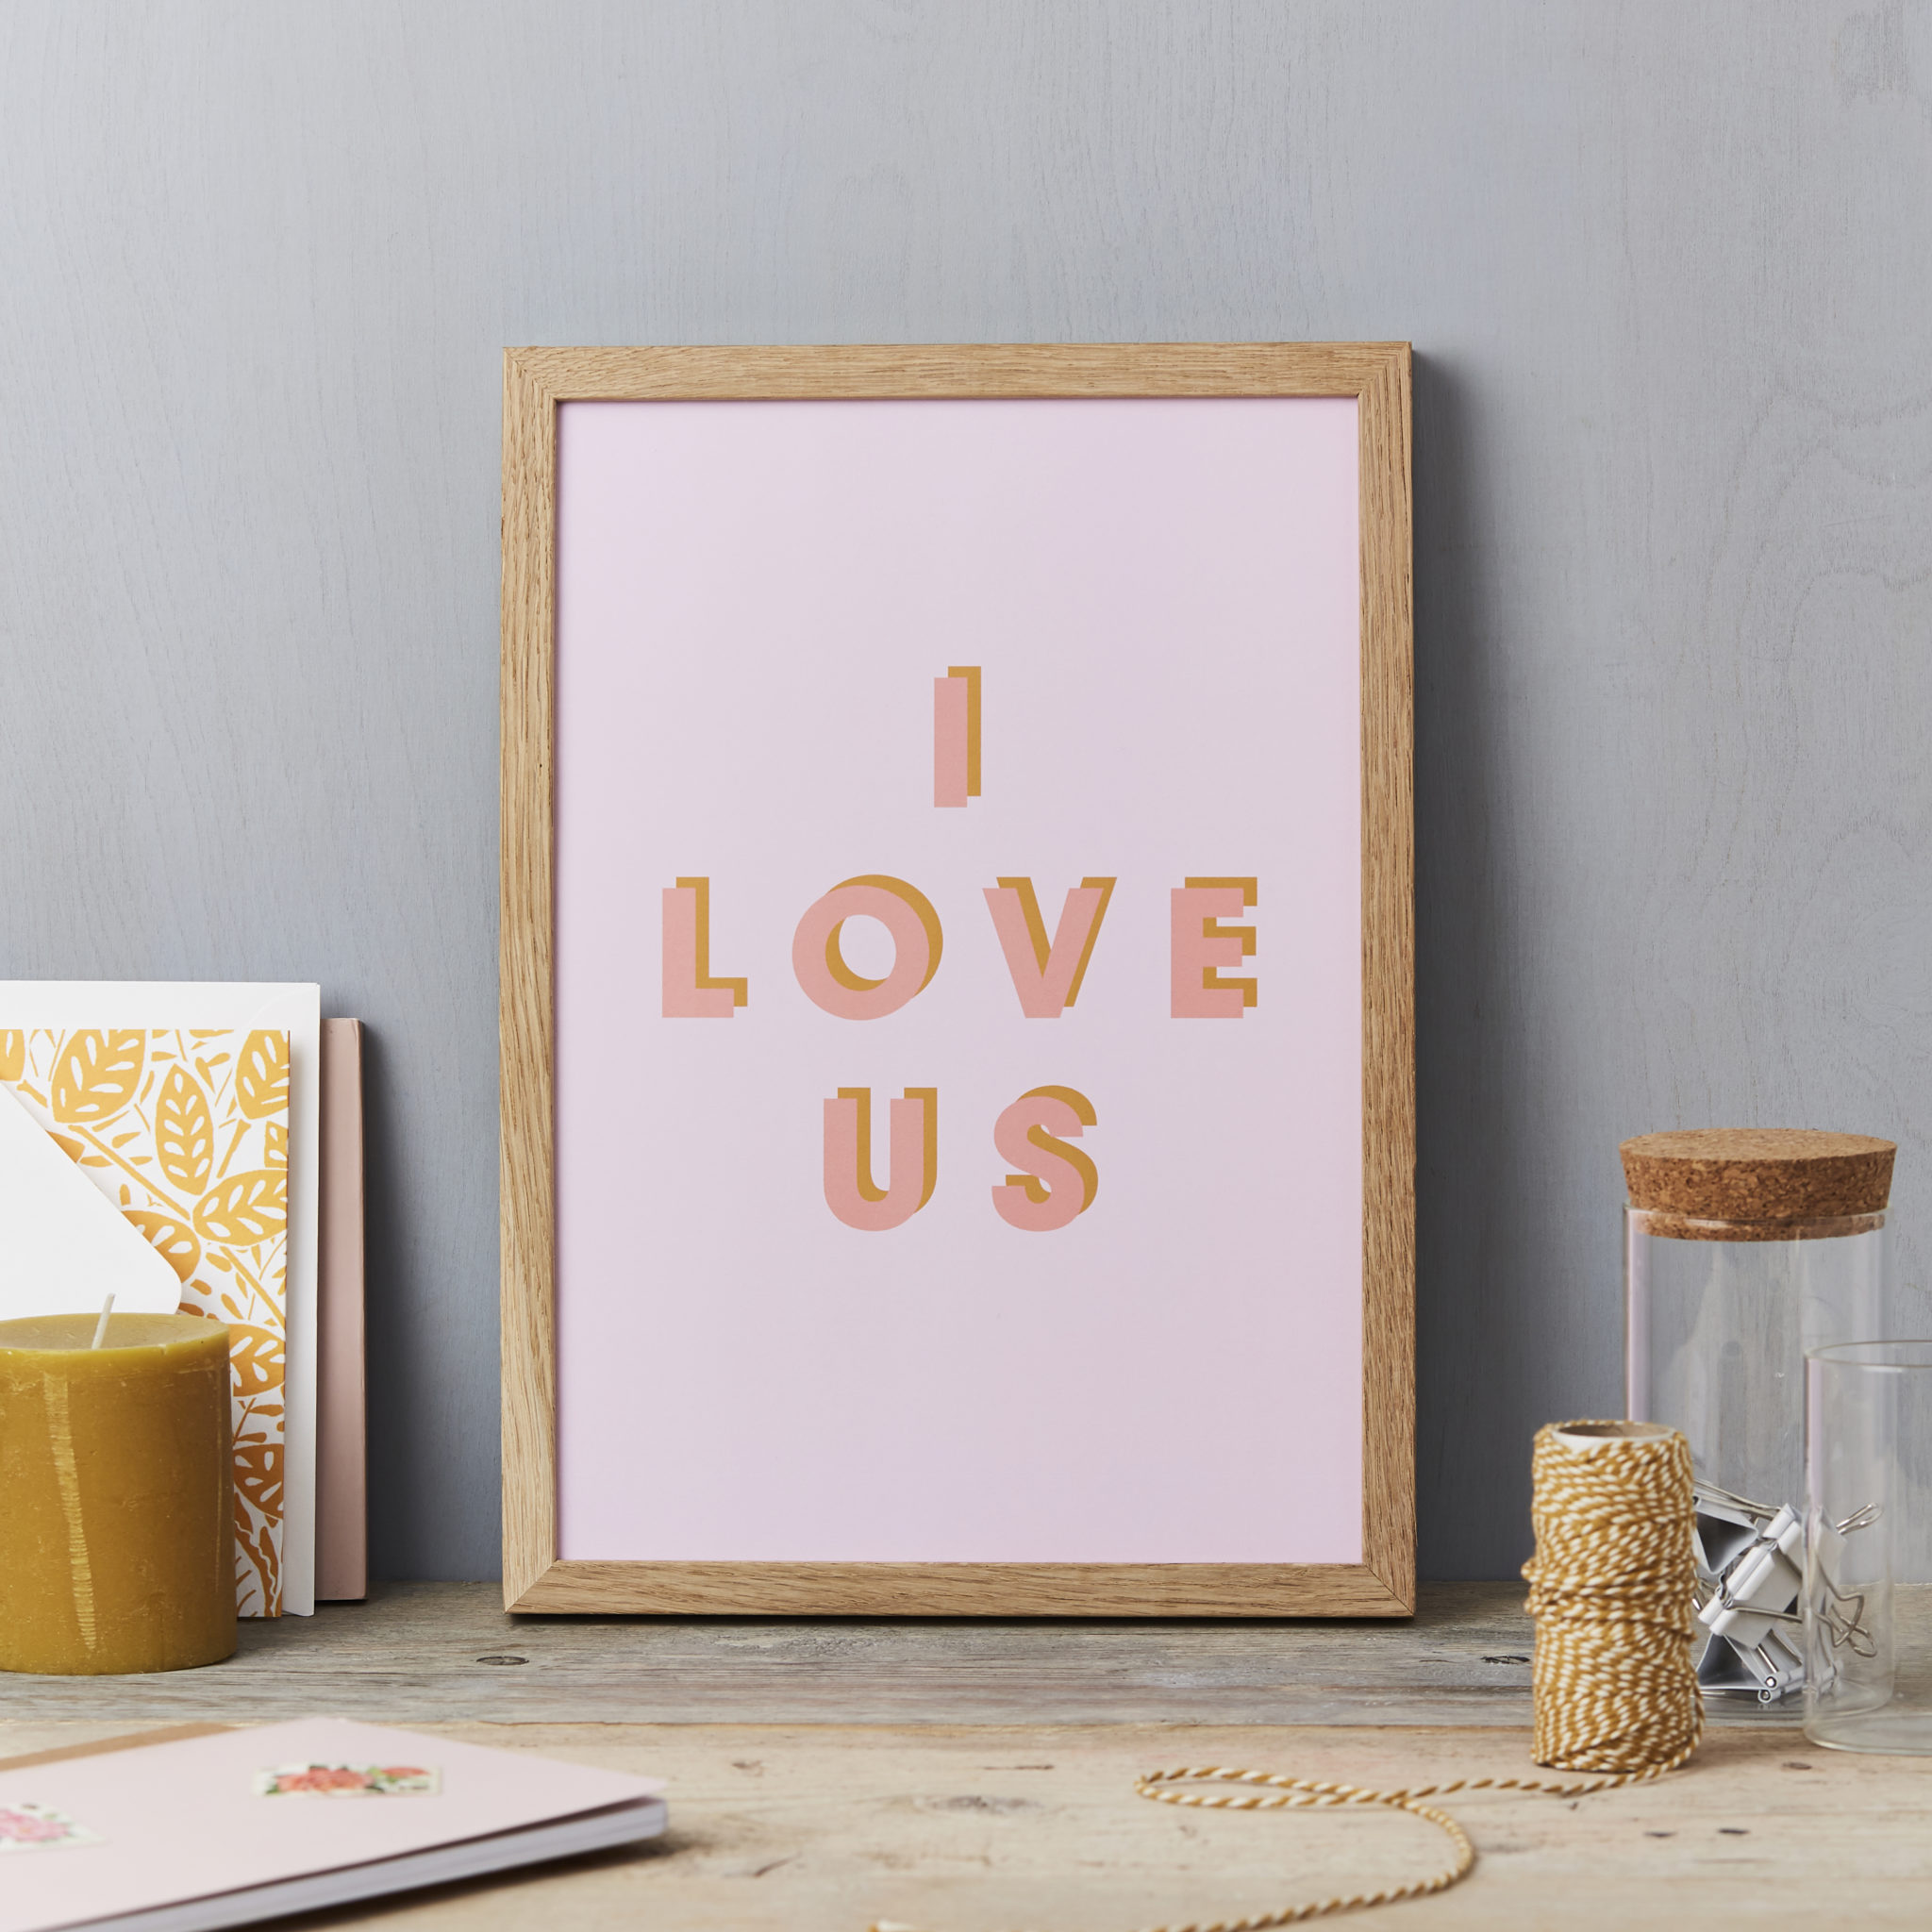 I love us A4 PRINT - pink and pink